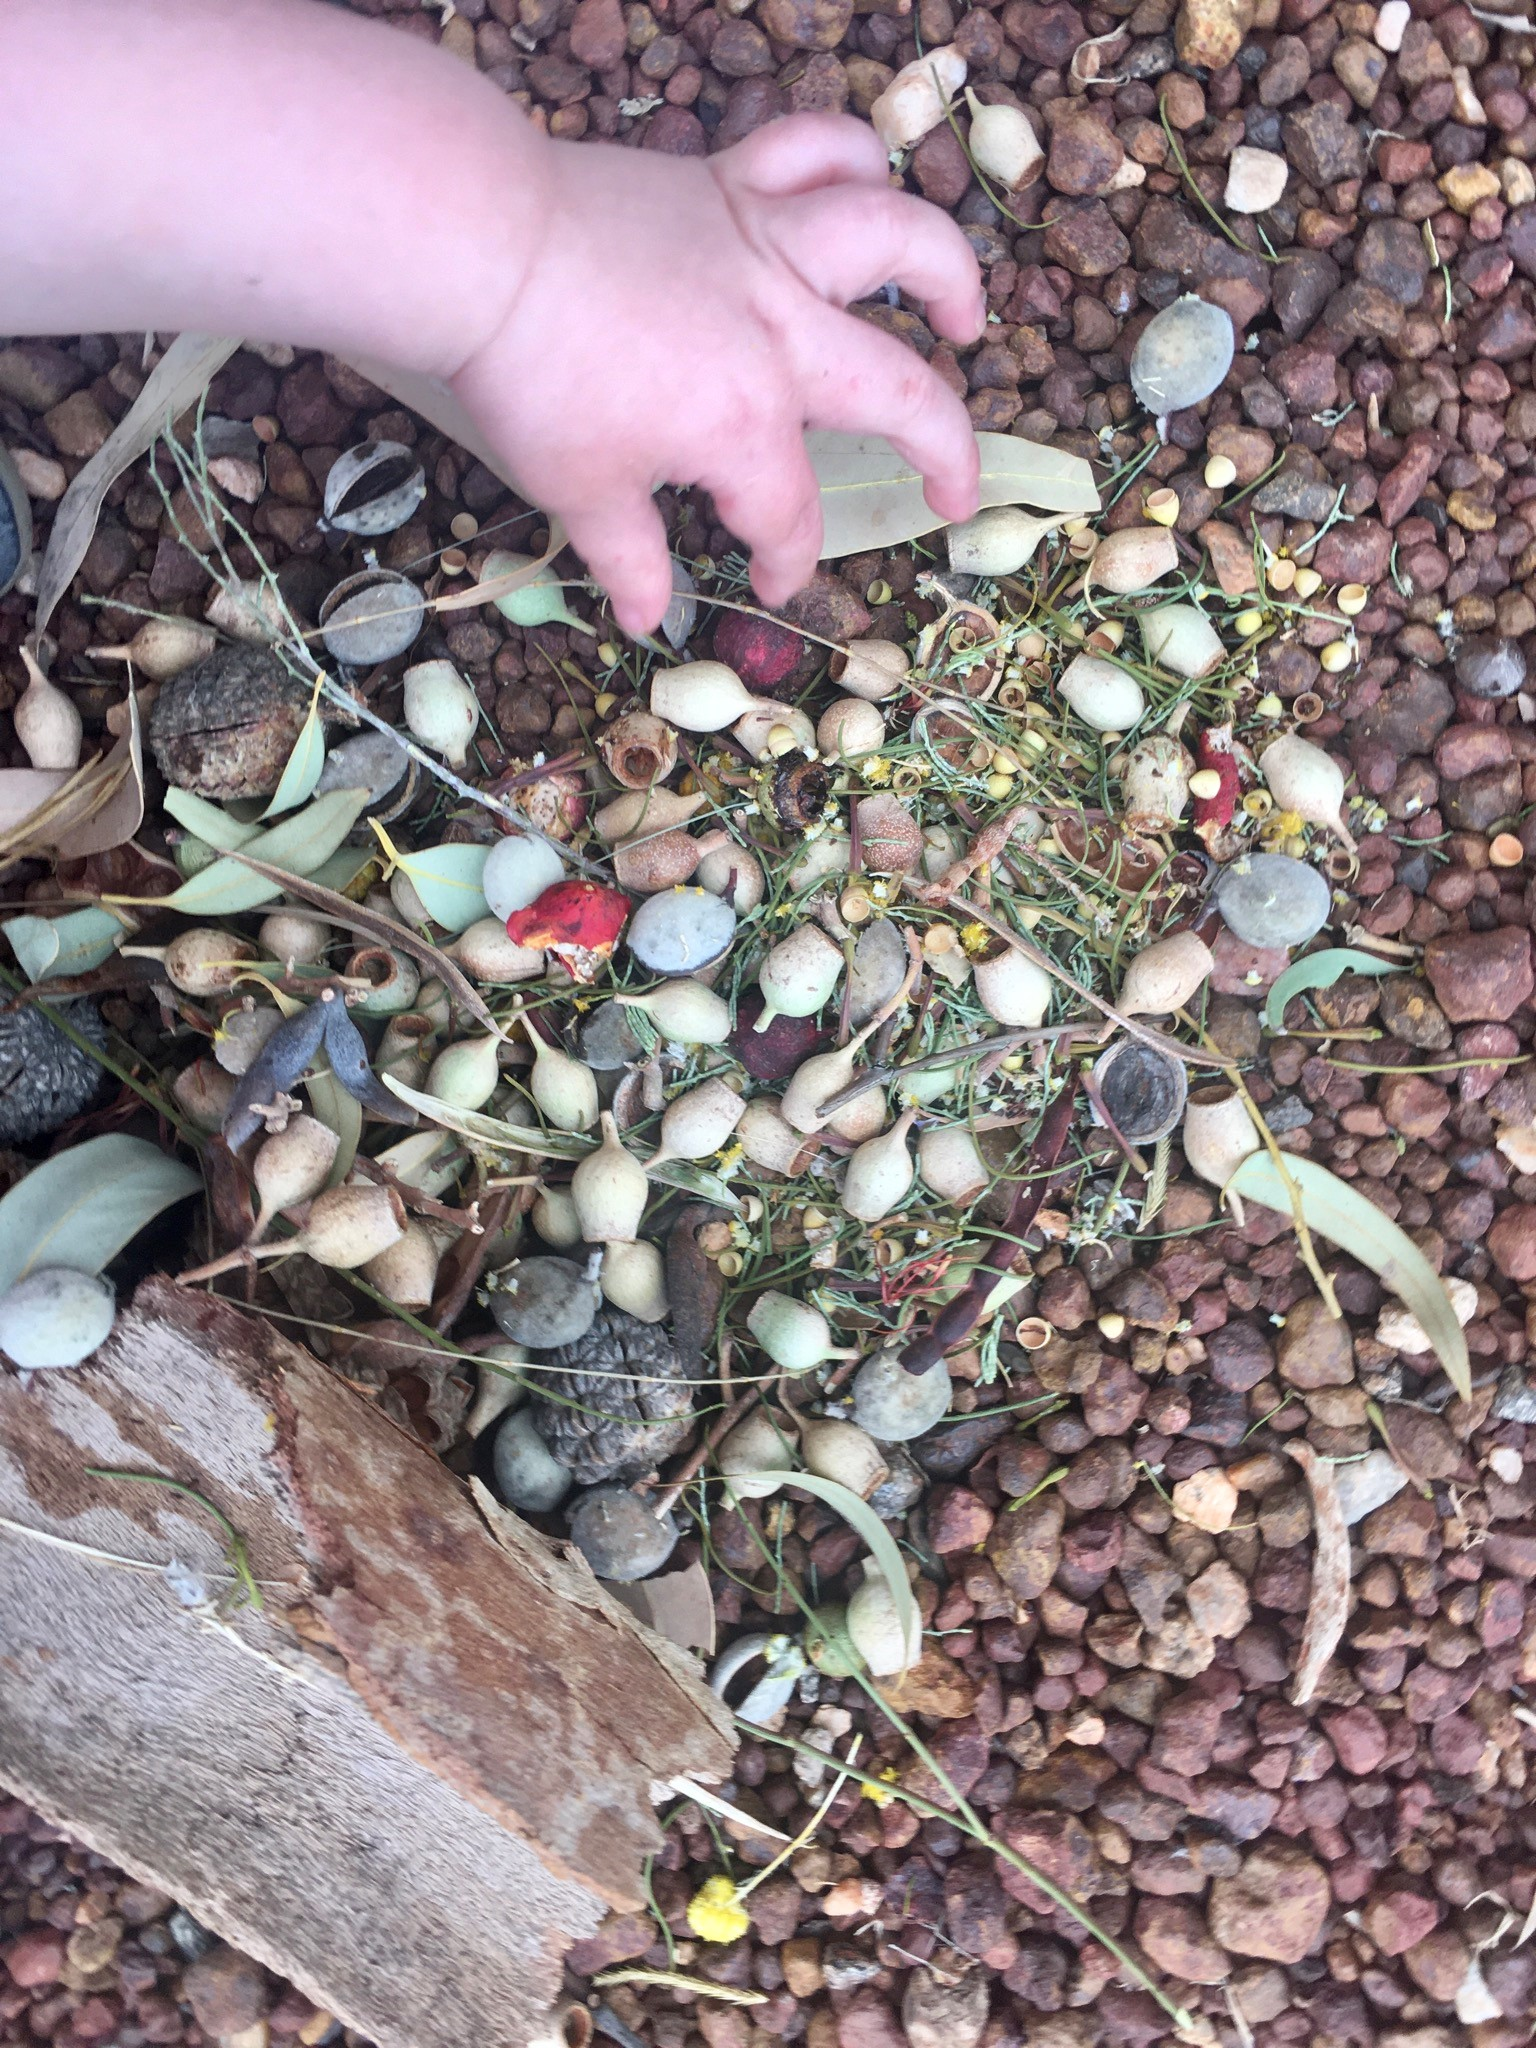 small hand picking up seeds on the ground.